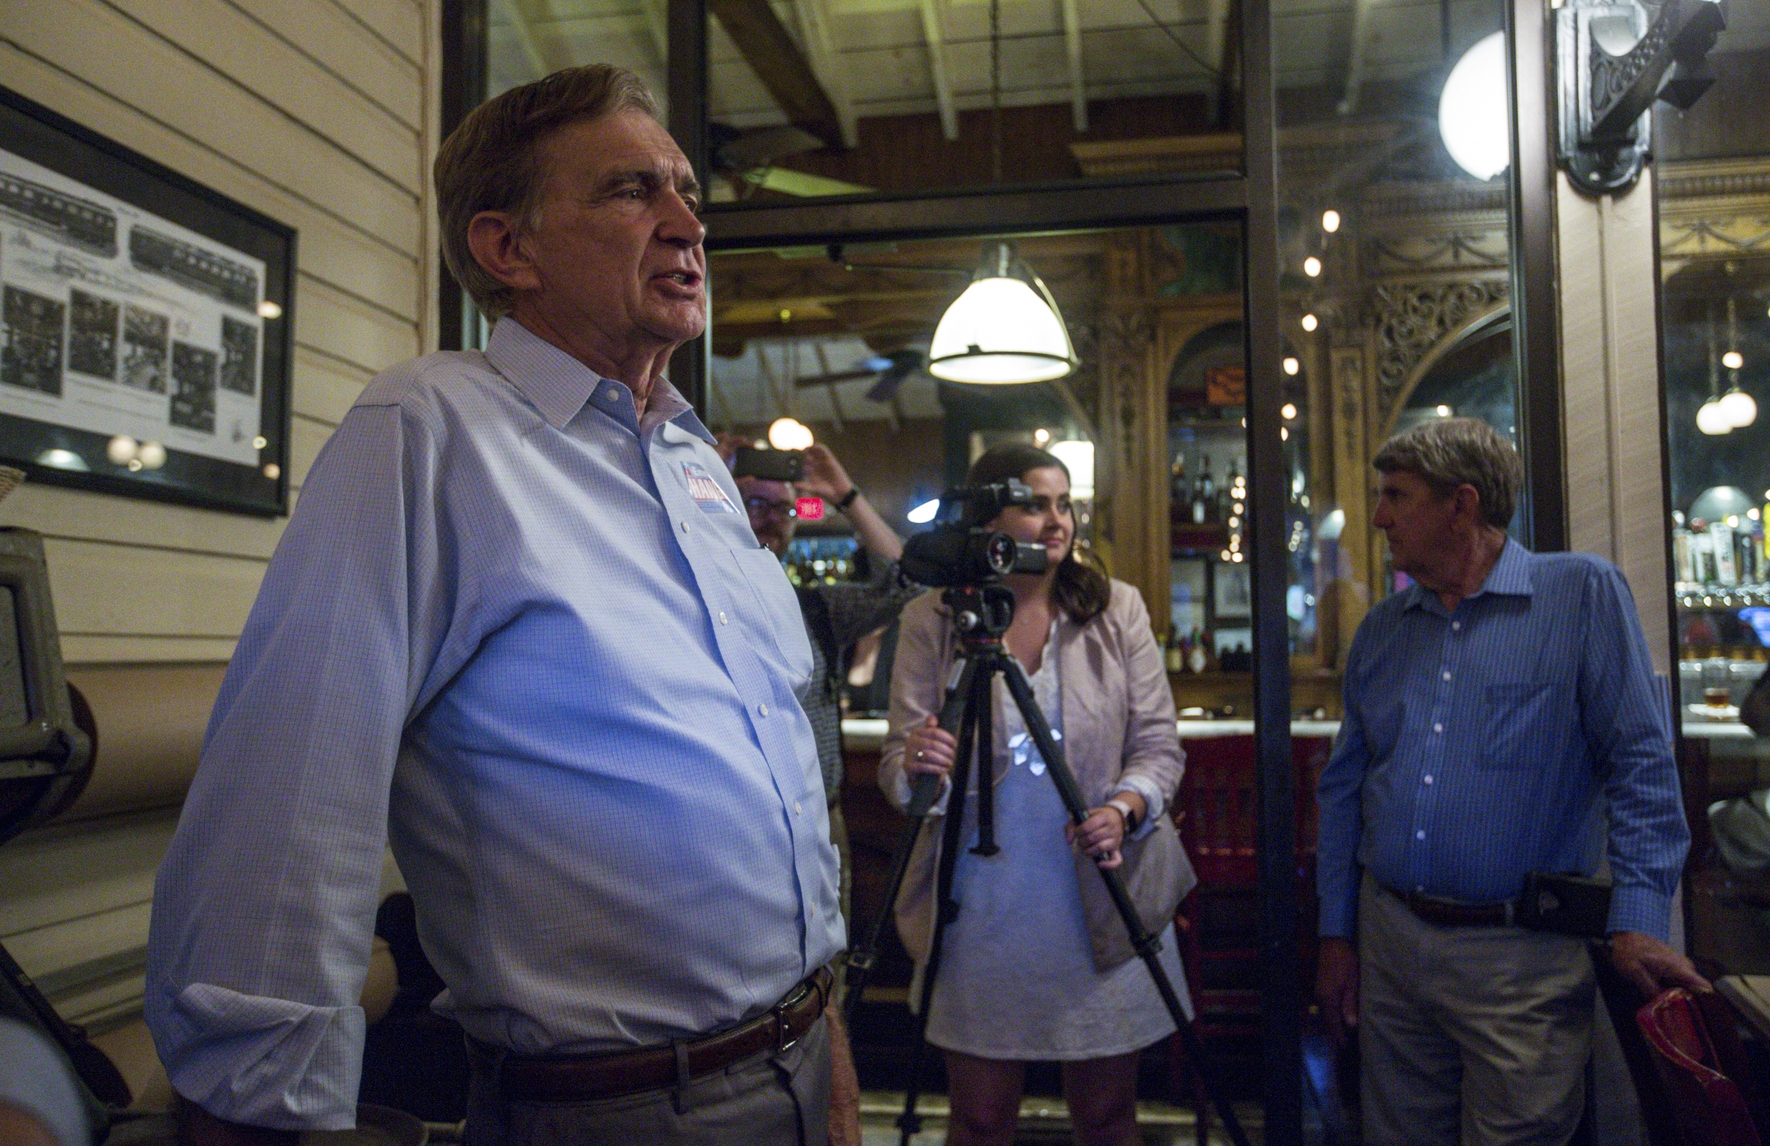 Virginia 24th District senator Emmett Hanger, R-Mount Solon, gives a victory speech during a party at The Depot Grille in Staunton, Va., Tuesday, June 11, 2019. Hanger won the primary election against challenger Tina Freitas. (Daniel Lin/Daily News-Record via AP)